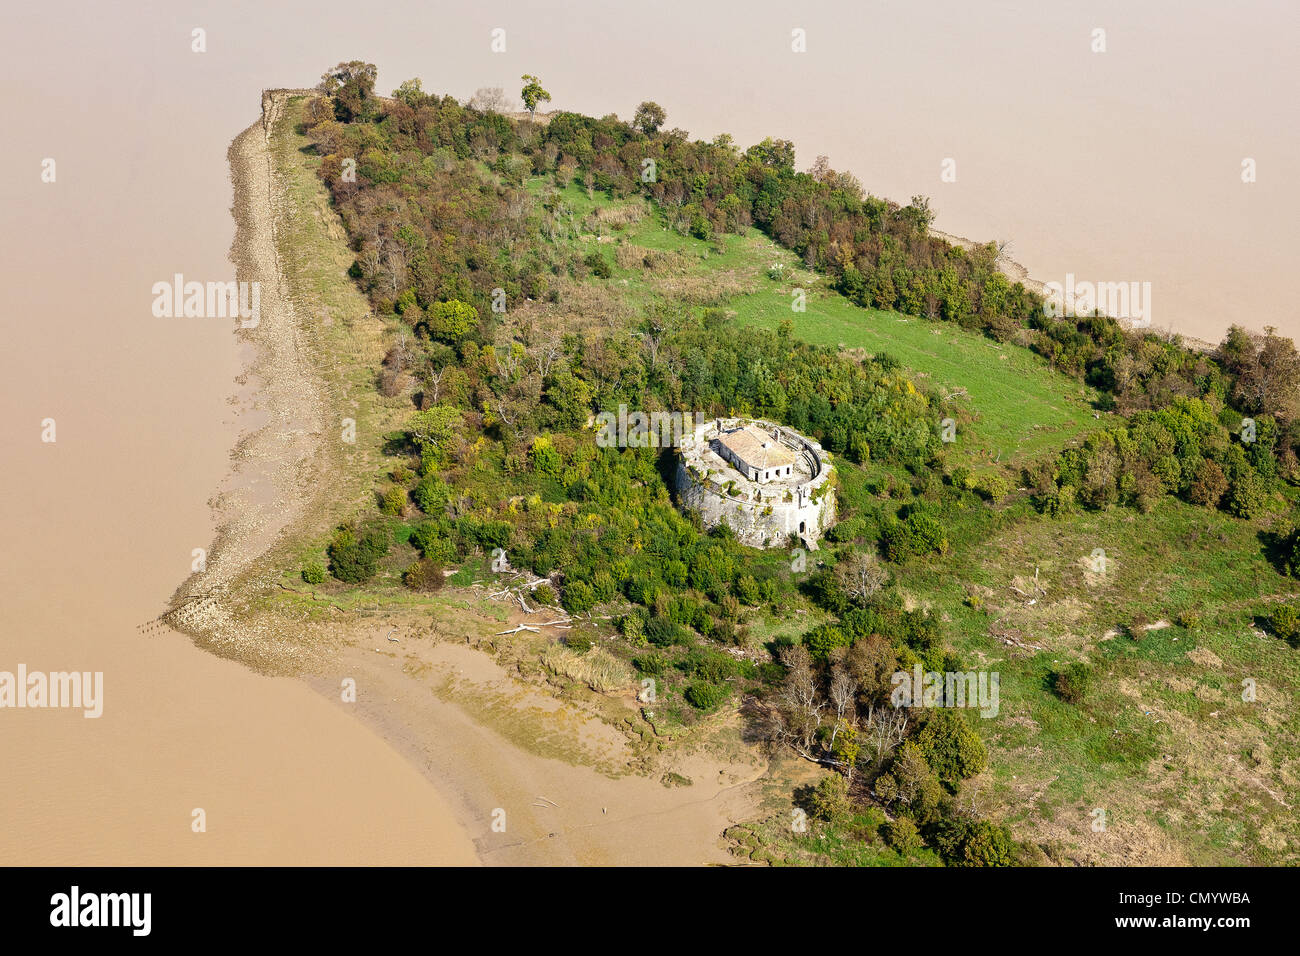 France, Gironde, Blaye, Fort Pate, Fortifications of Vauban, listed as World Heritage by UNESCO (aerial view) - Stock Image